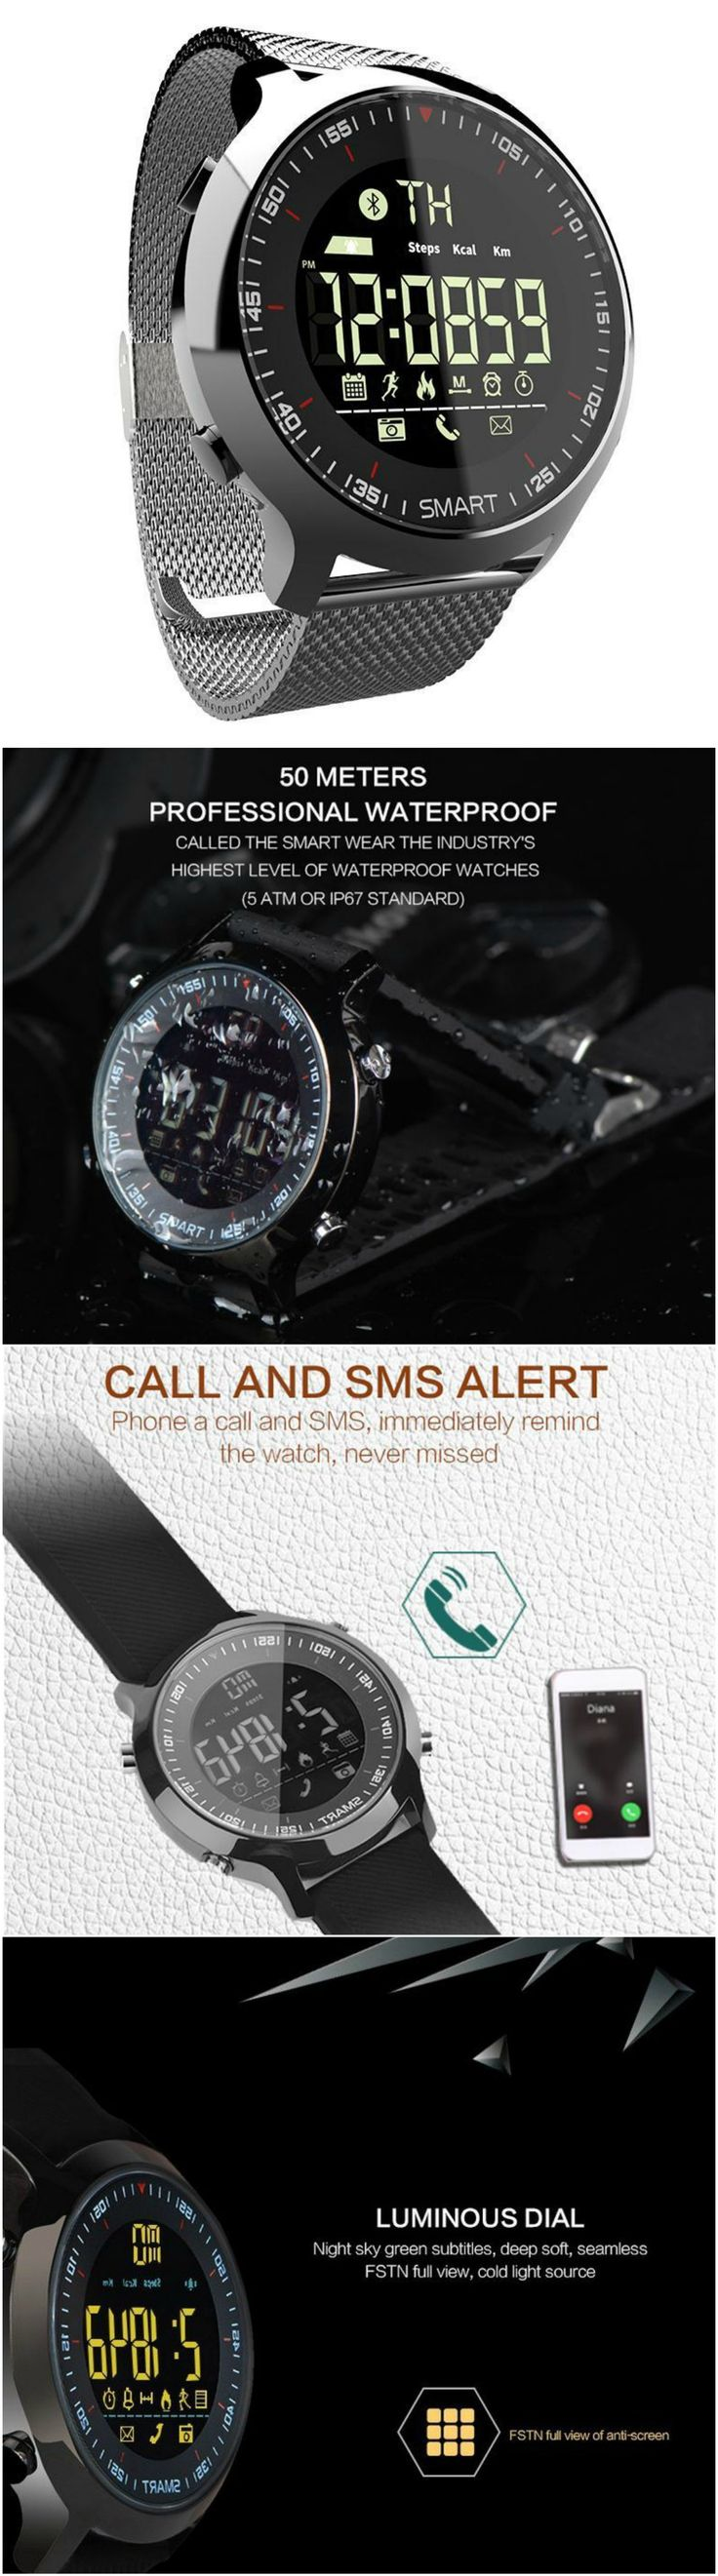 698 Best Cool Gadgets Images On Pinterest Bugs Insects And Rodents Hard Drive Circuit Board Desk Clock Livbit New Arrival Ip67 Waterproof Smartwatch Support Call Sms Alert Sports Activities Tracker Wristwatch For Ios Android Phones